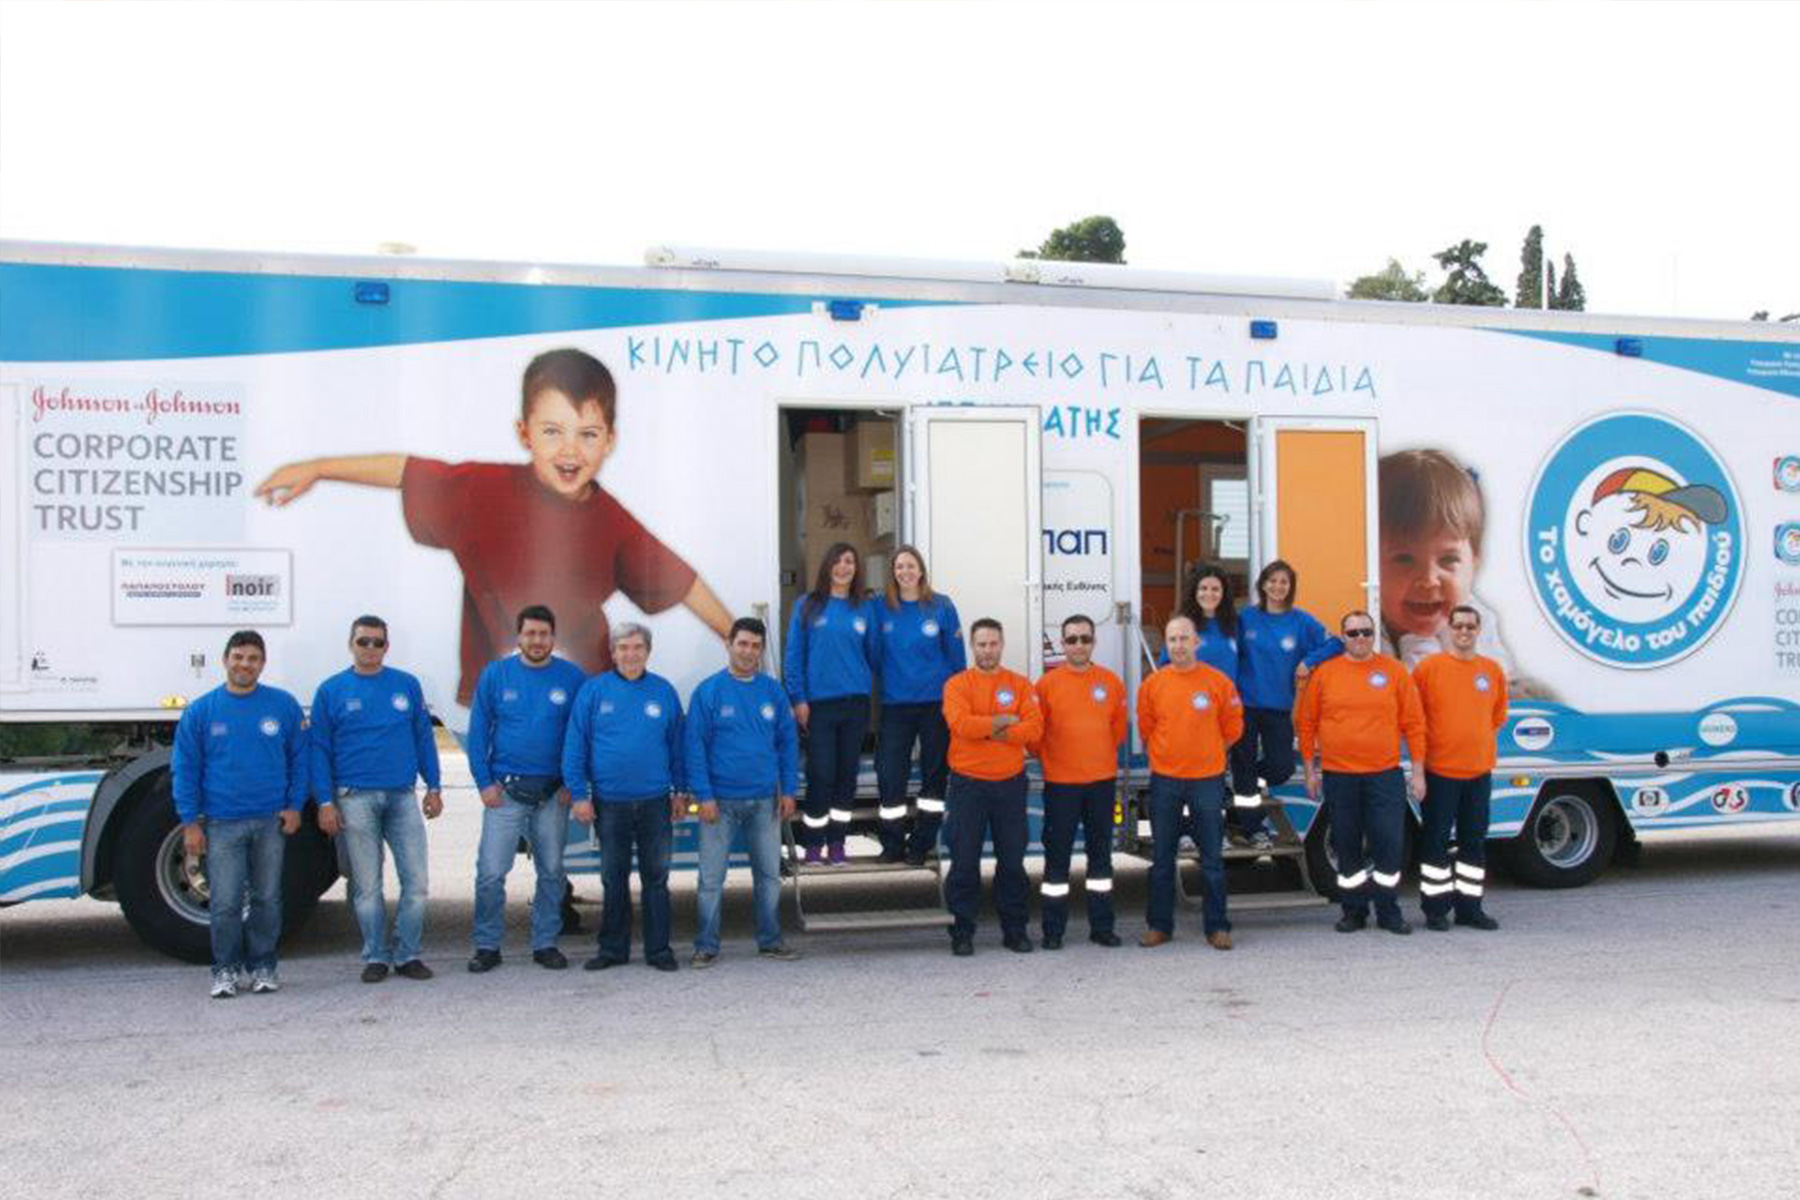 Mobile clinics bring a smile to children in Greece